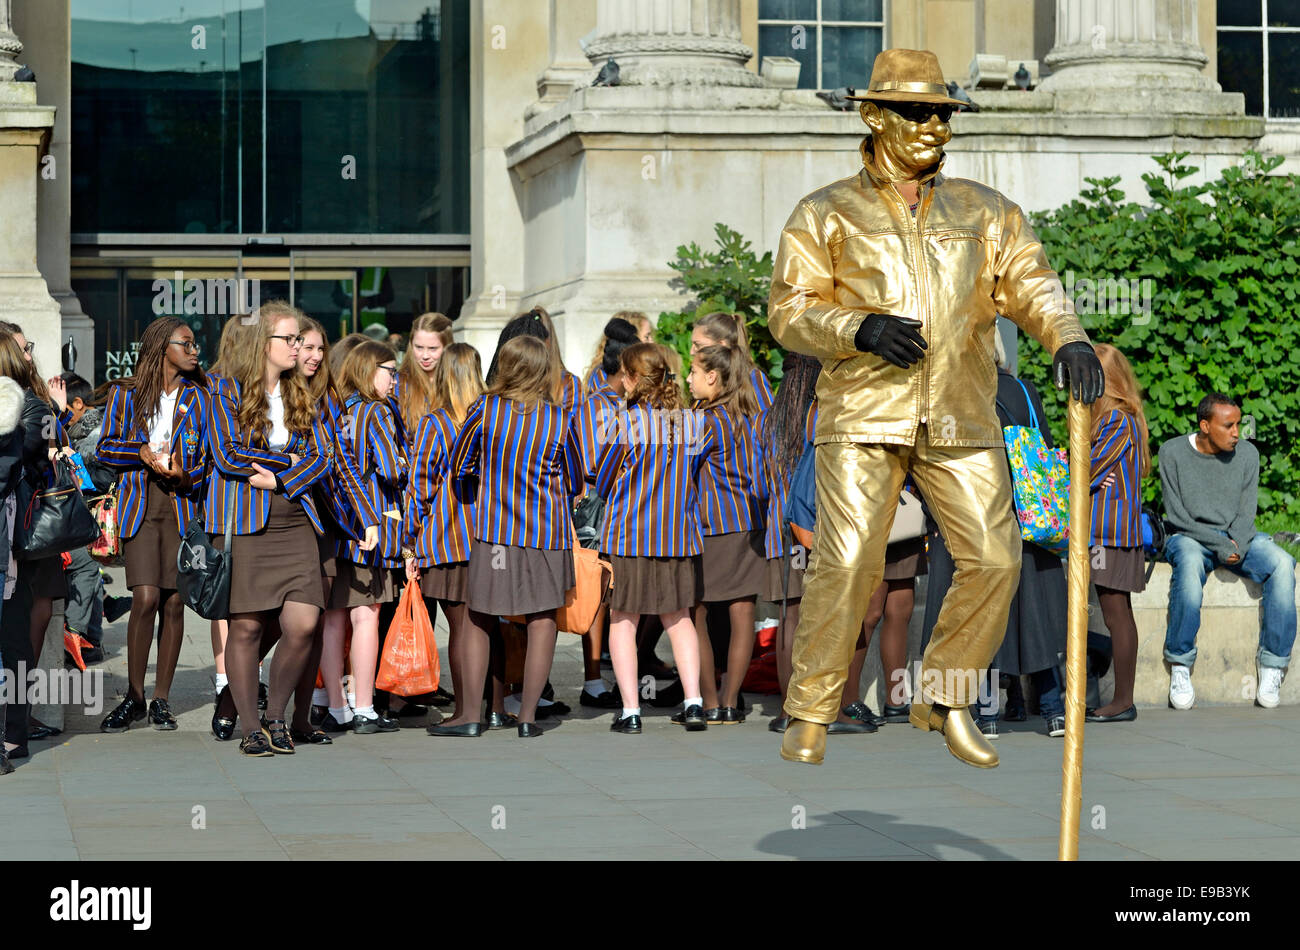 London, England, UK. 'Floating' human statue and a group of schoolgirls on a trip in Trafalgar Square - Stock Image